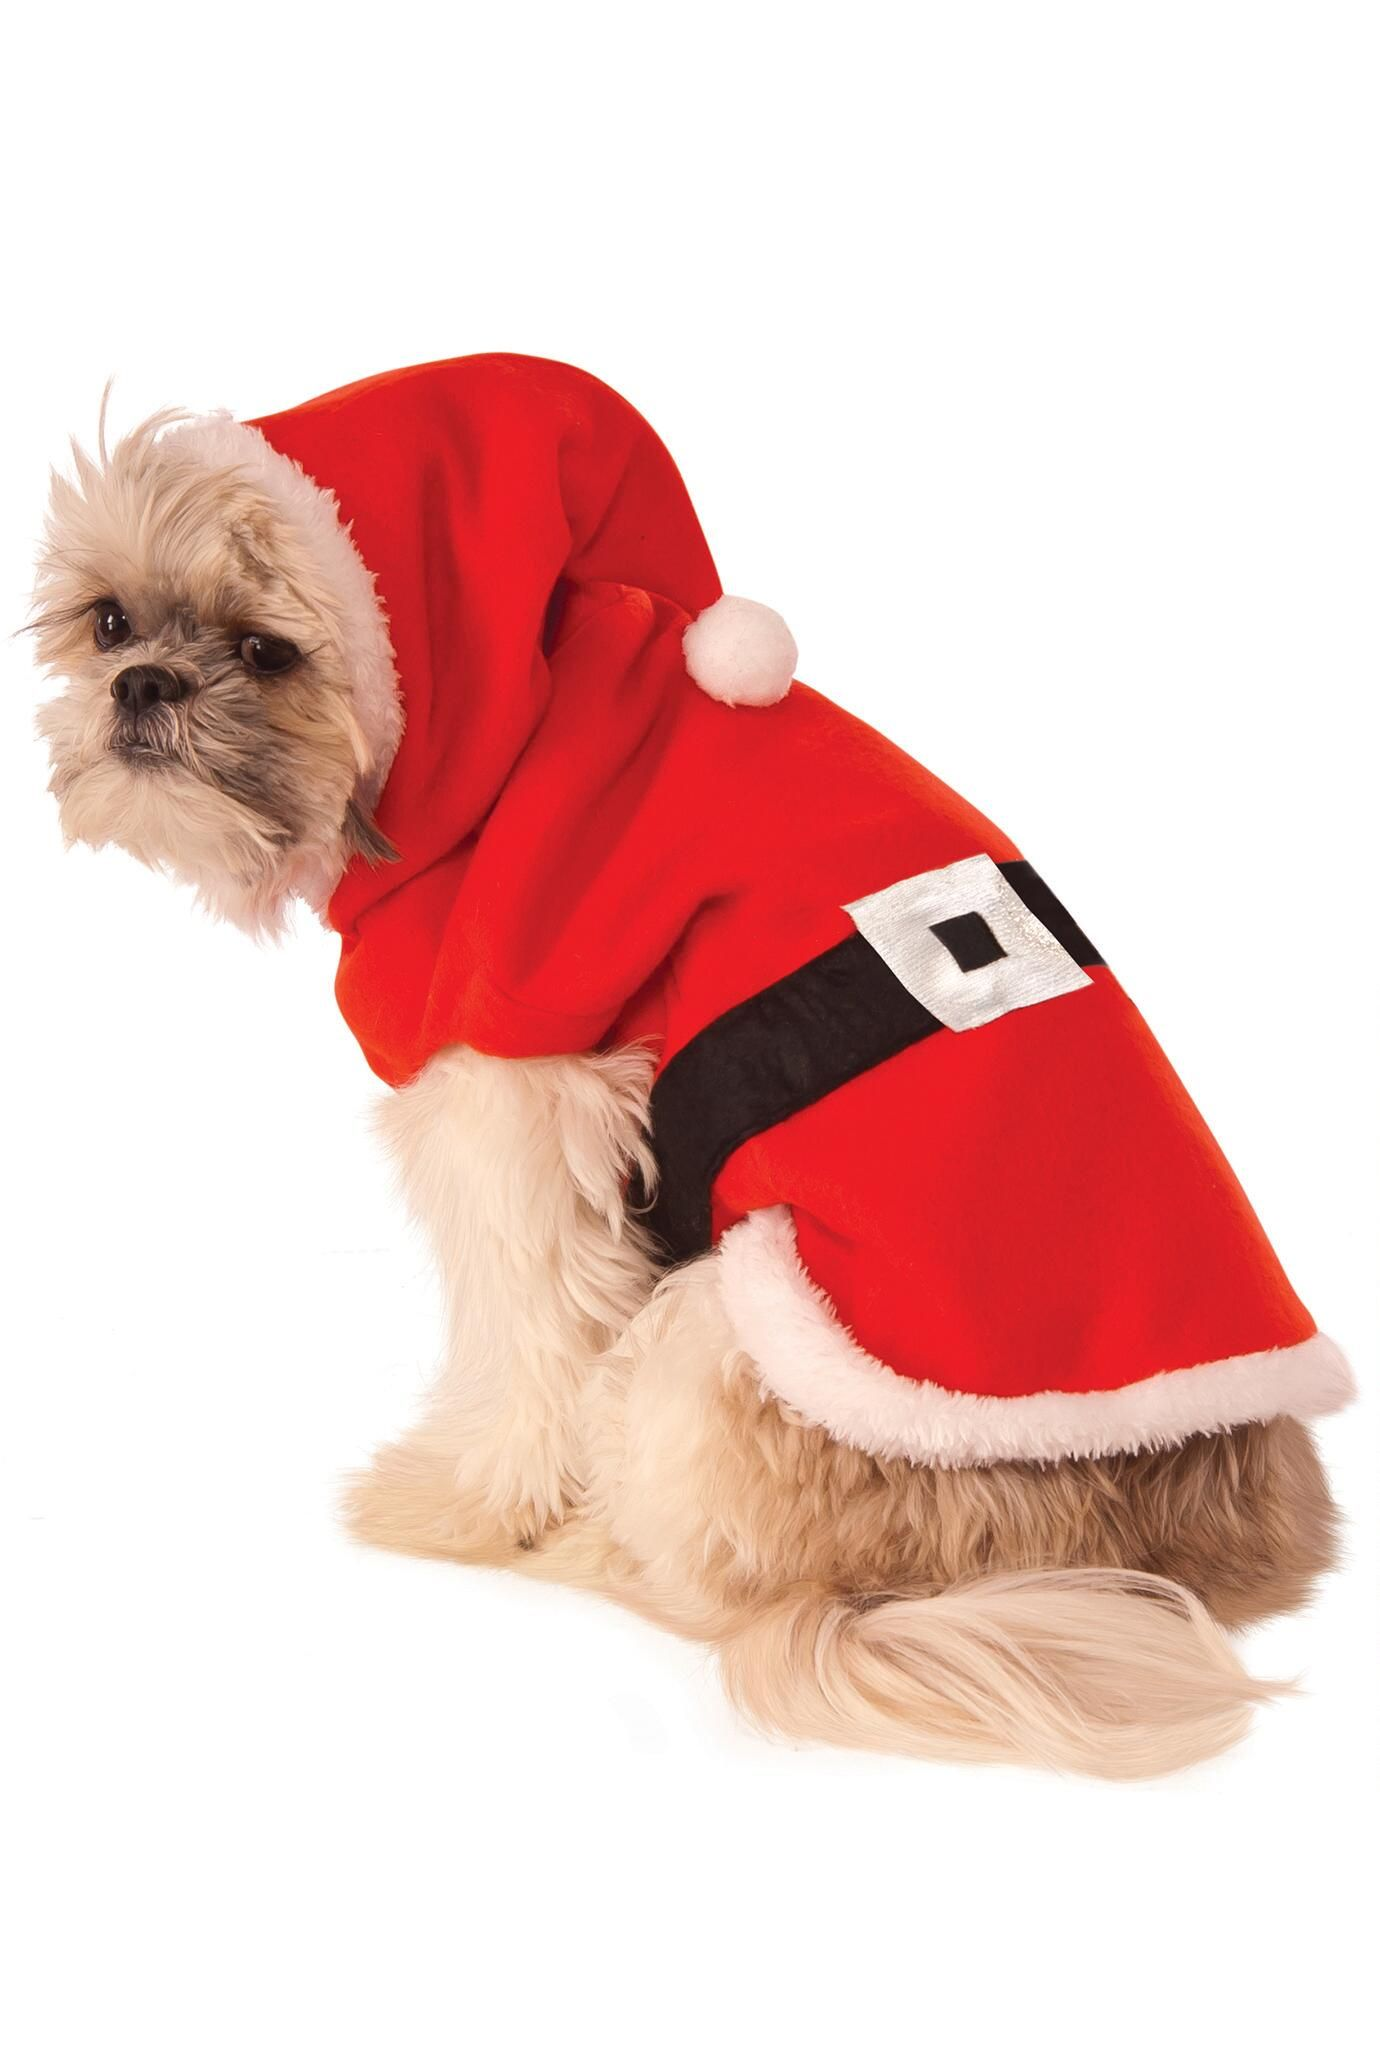 Santa Hoodie Costume For Dogs Chasingfireflies 19 00 Costumes